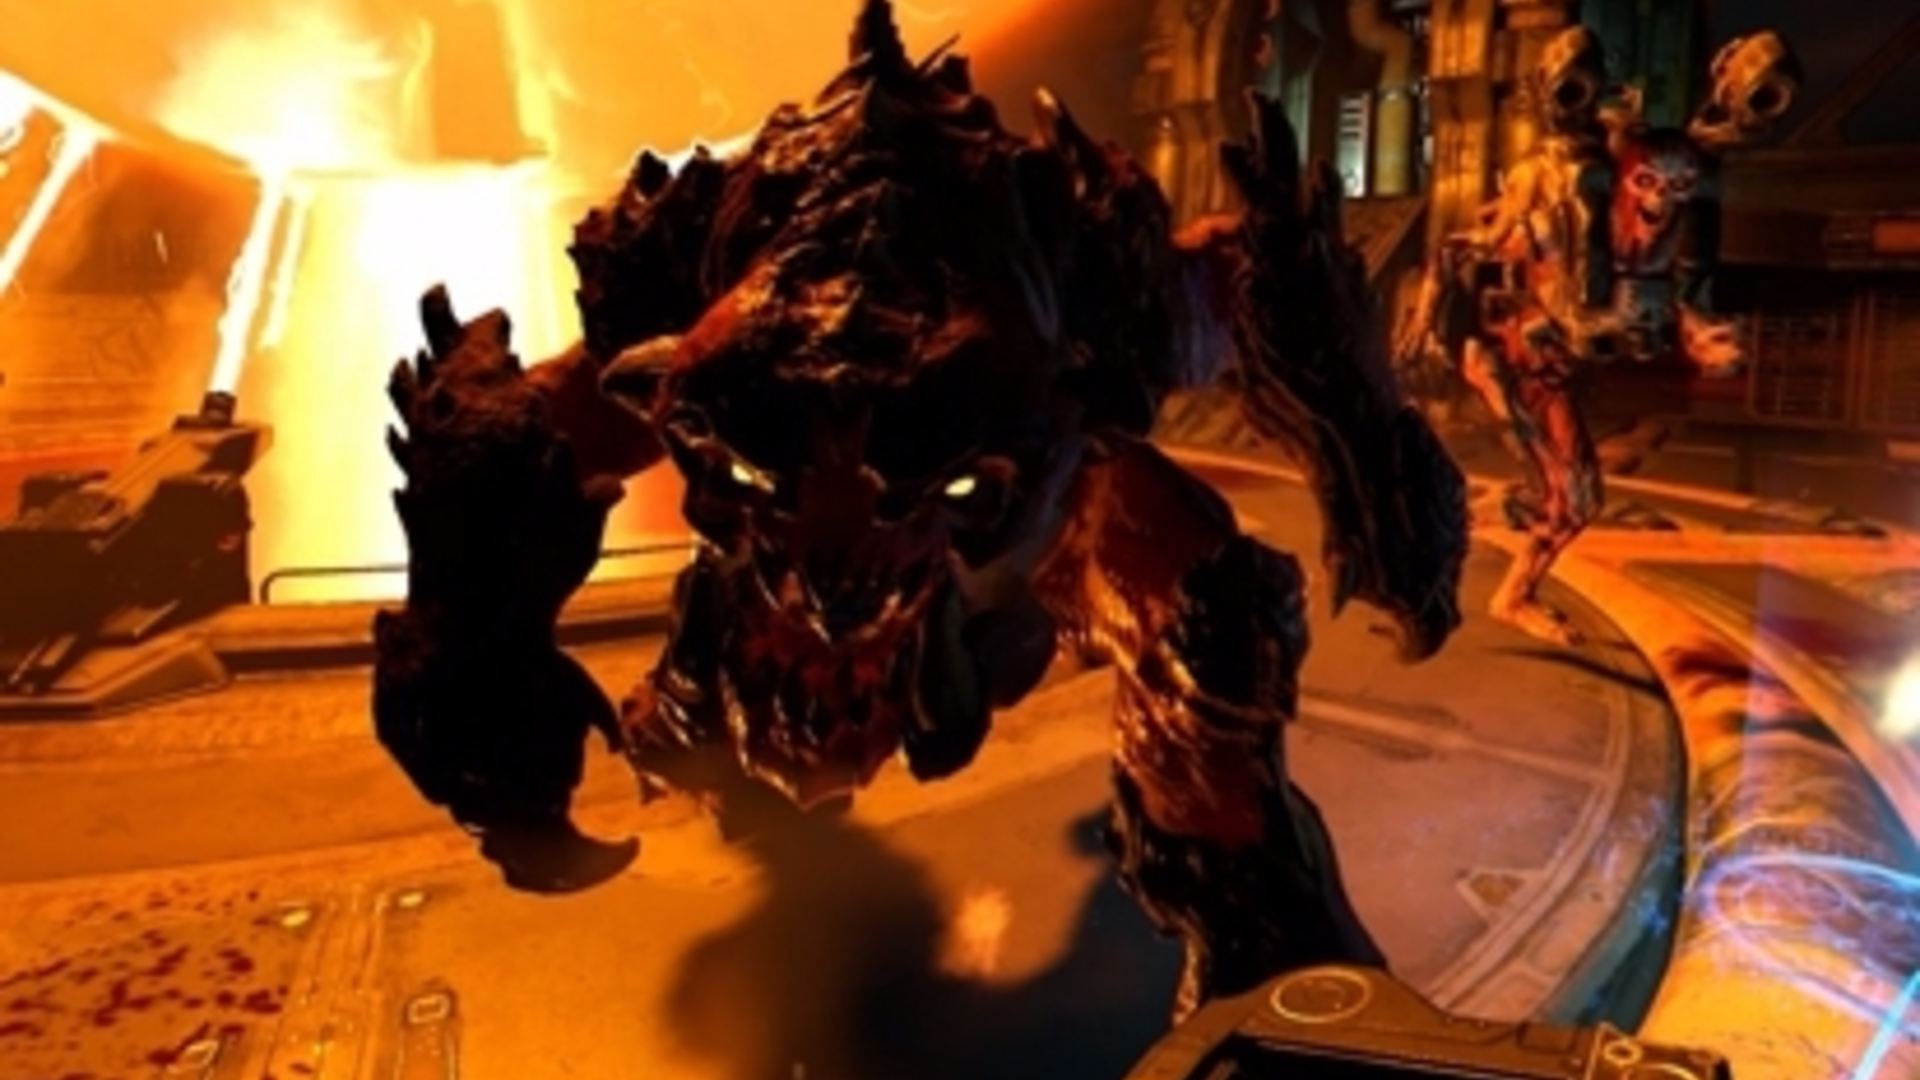 skyrim doom and fallout 4 get vr release dates eurogamer net